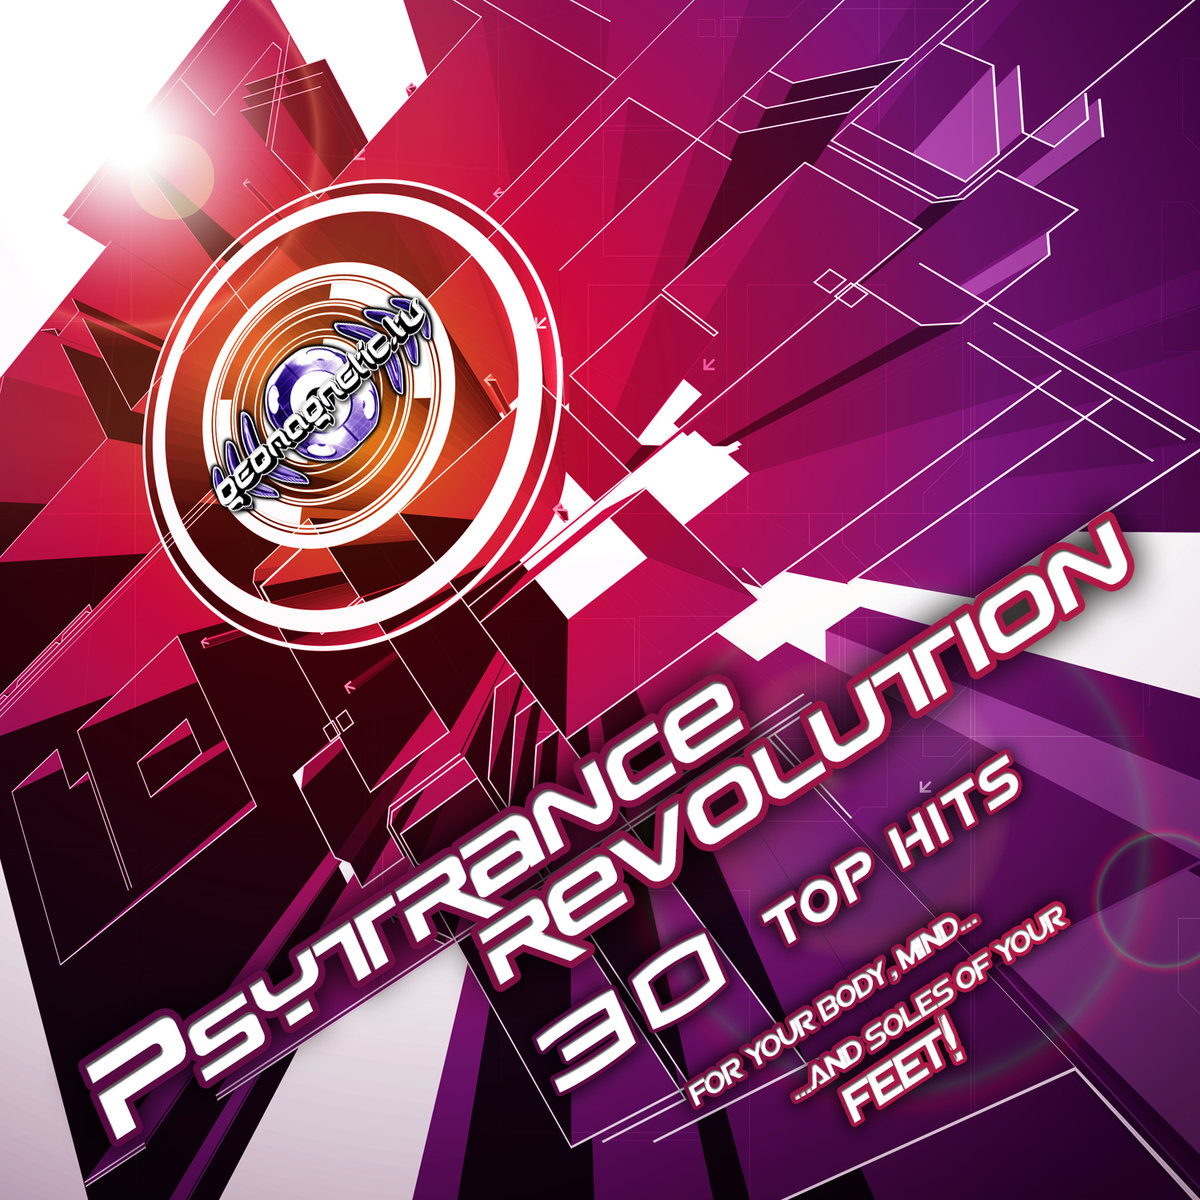 Koatl - Hyper Nova @ 'Various Artists - Psytrance Revolution (30 Top Hits)' album (electronic, goa)